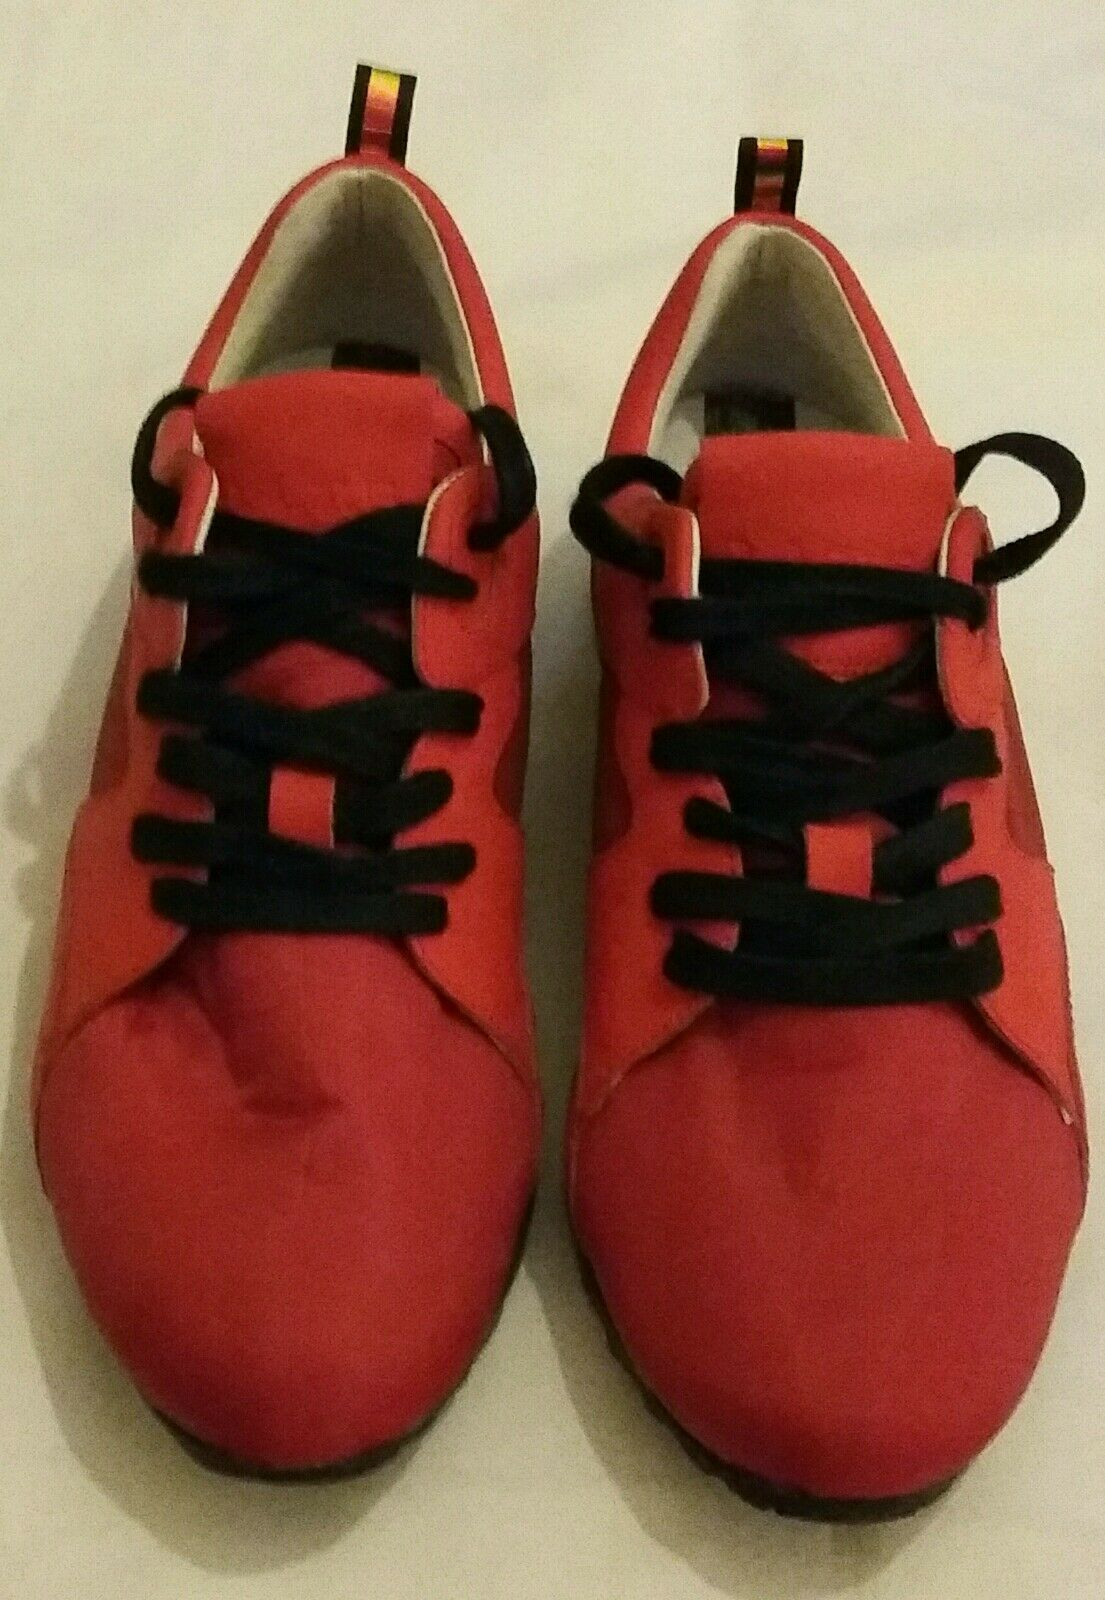 D.A.T.E Premium Trainers sneakers Size eu 37 Made in italy